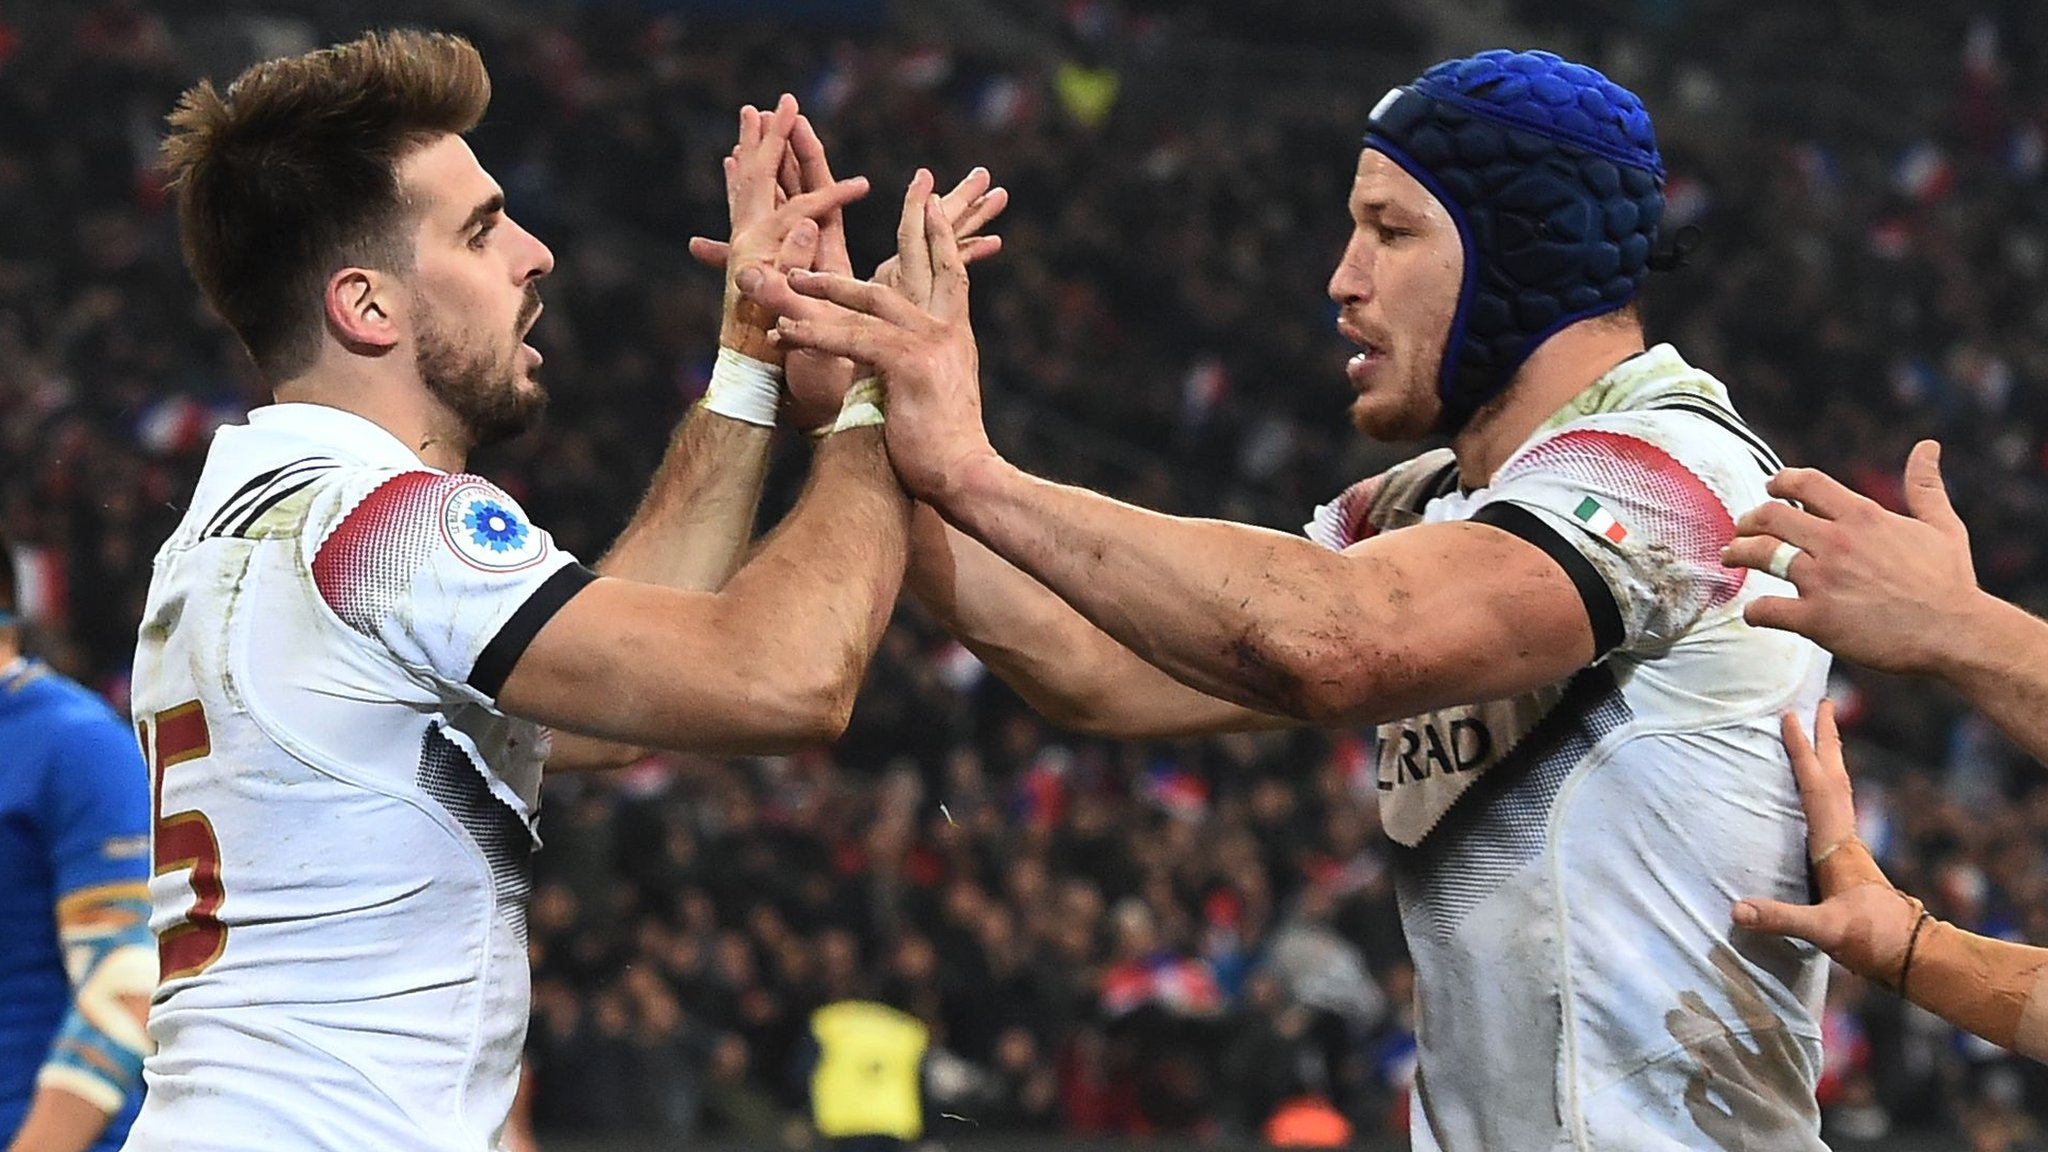 France end winless run by inflicting more misery on Italy - highlights & report